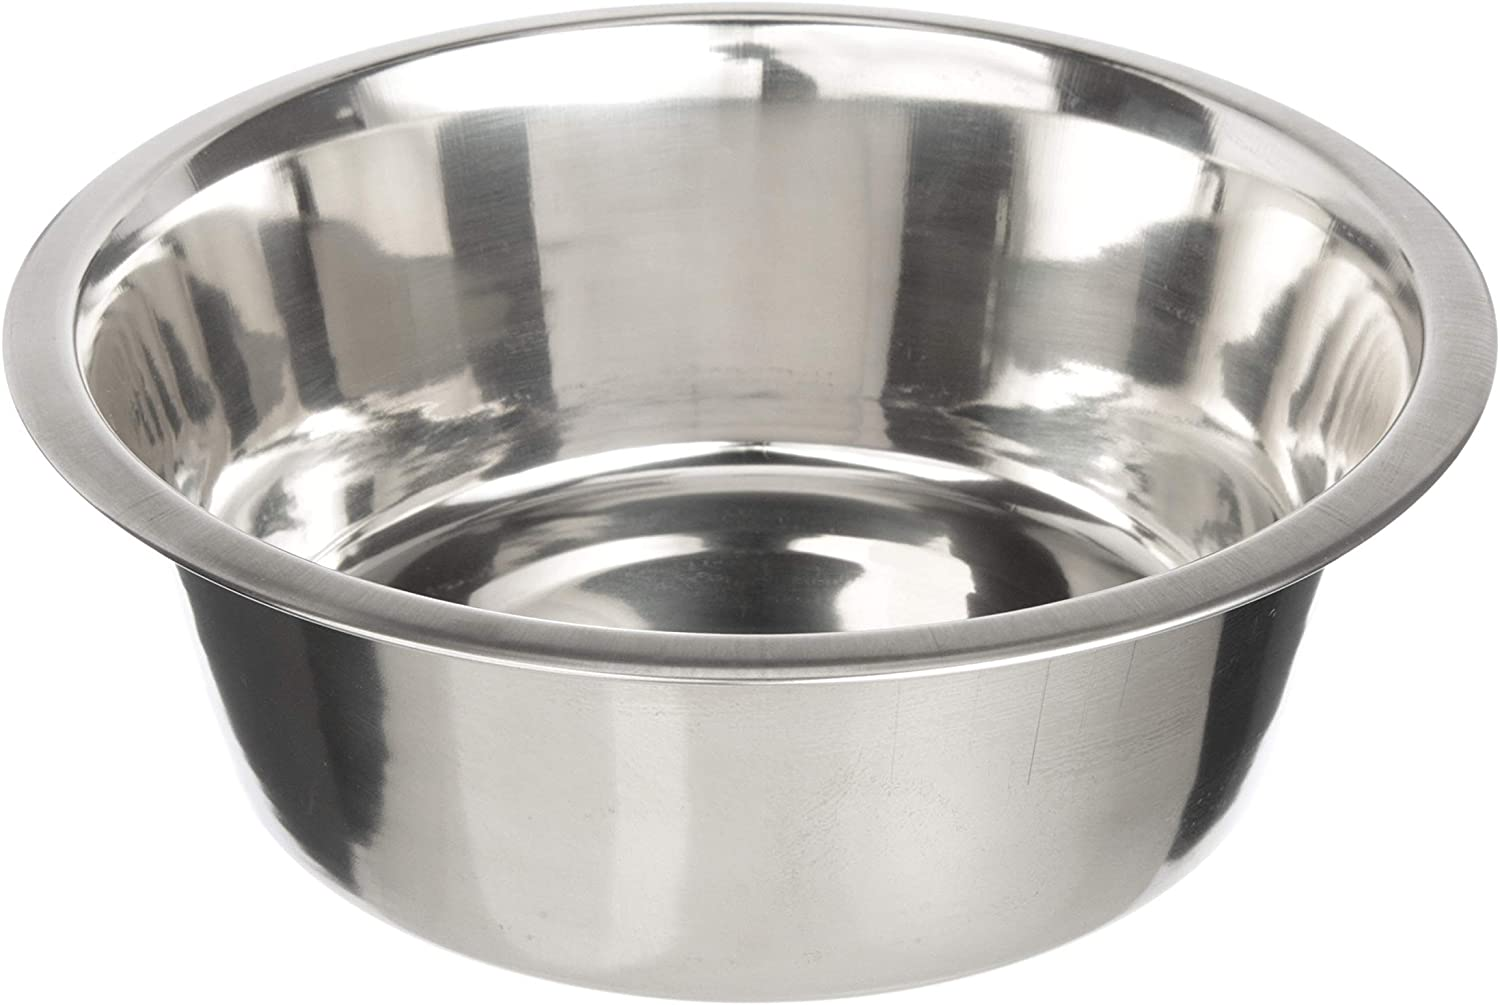 Stainless Steel Dog and Cat Bowls - Neater Feeder Extra Replacement Bowl (Metal Food and Water Dish), Single Bowl or 2 Pack